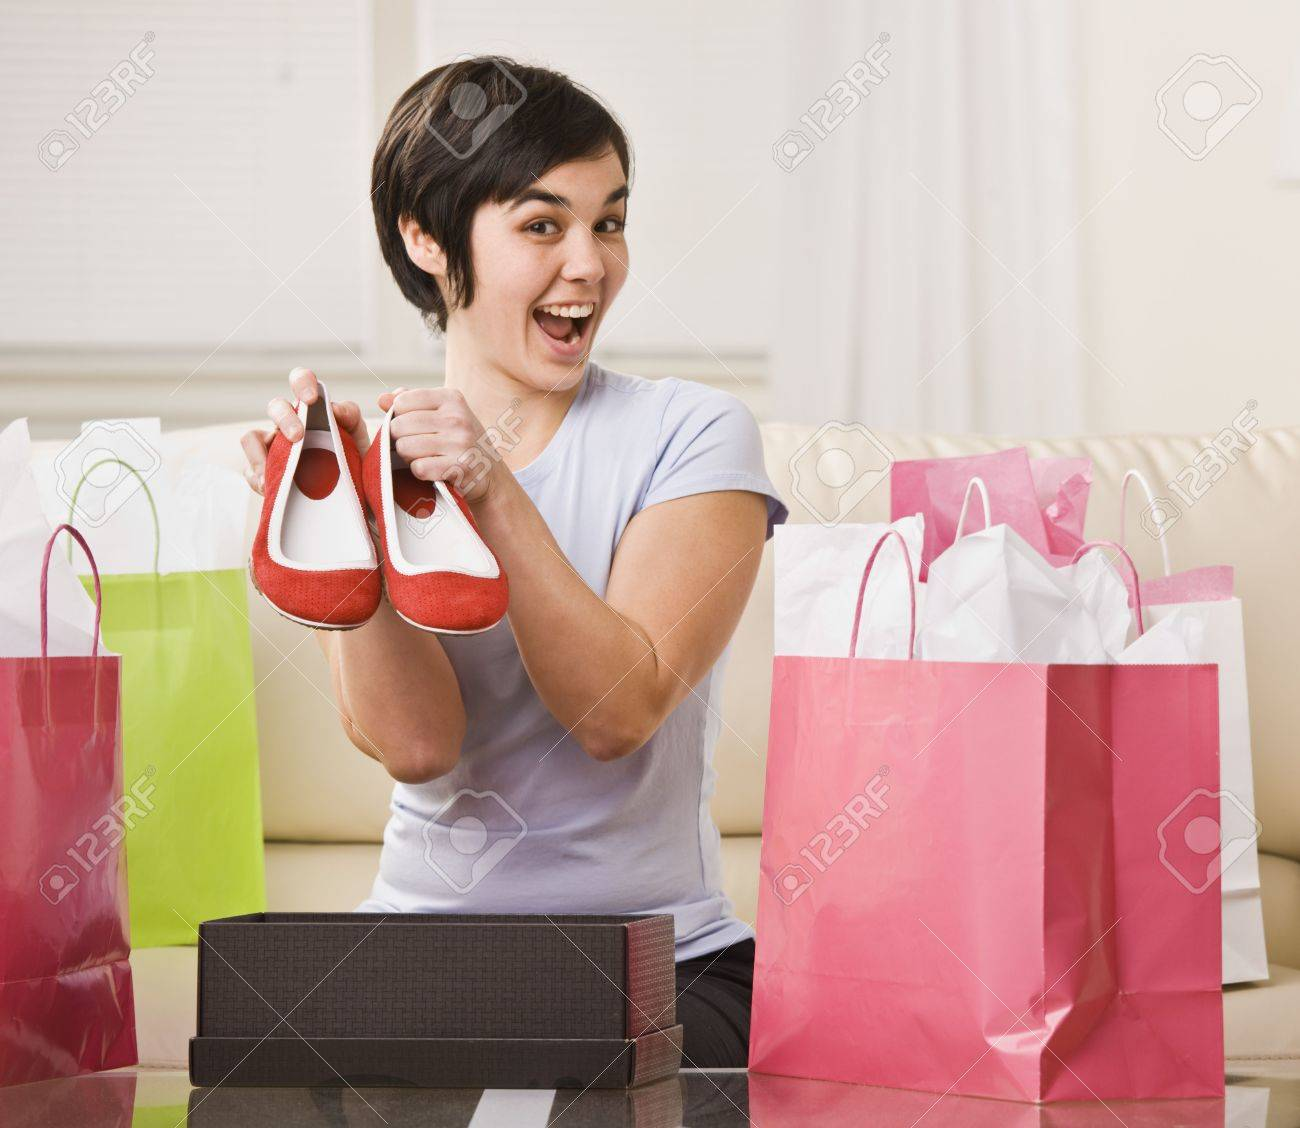 A young woman is surrounded by shopping bags and is holding out a pair of shoes.  She is smiling at the camera.  Square framed shot. Stock Photo - 5333259